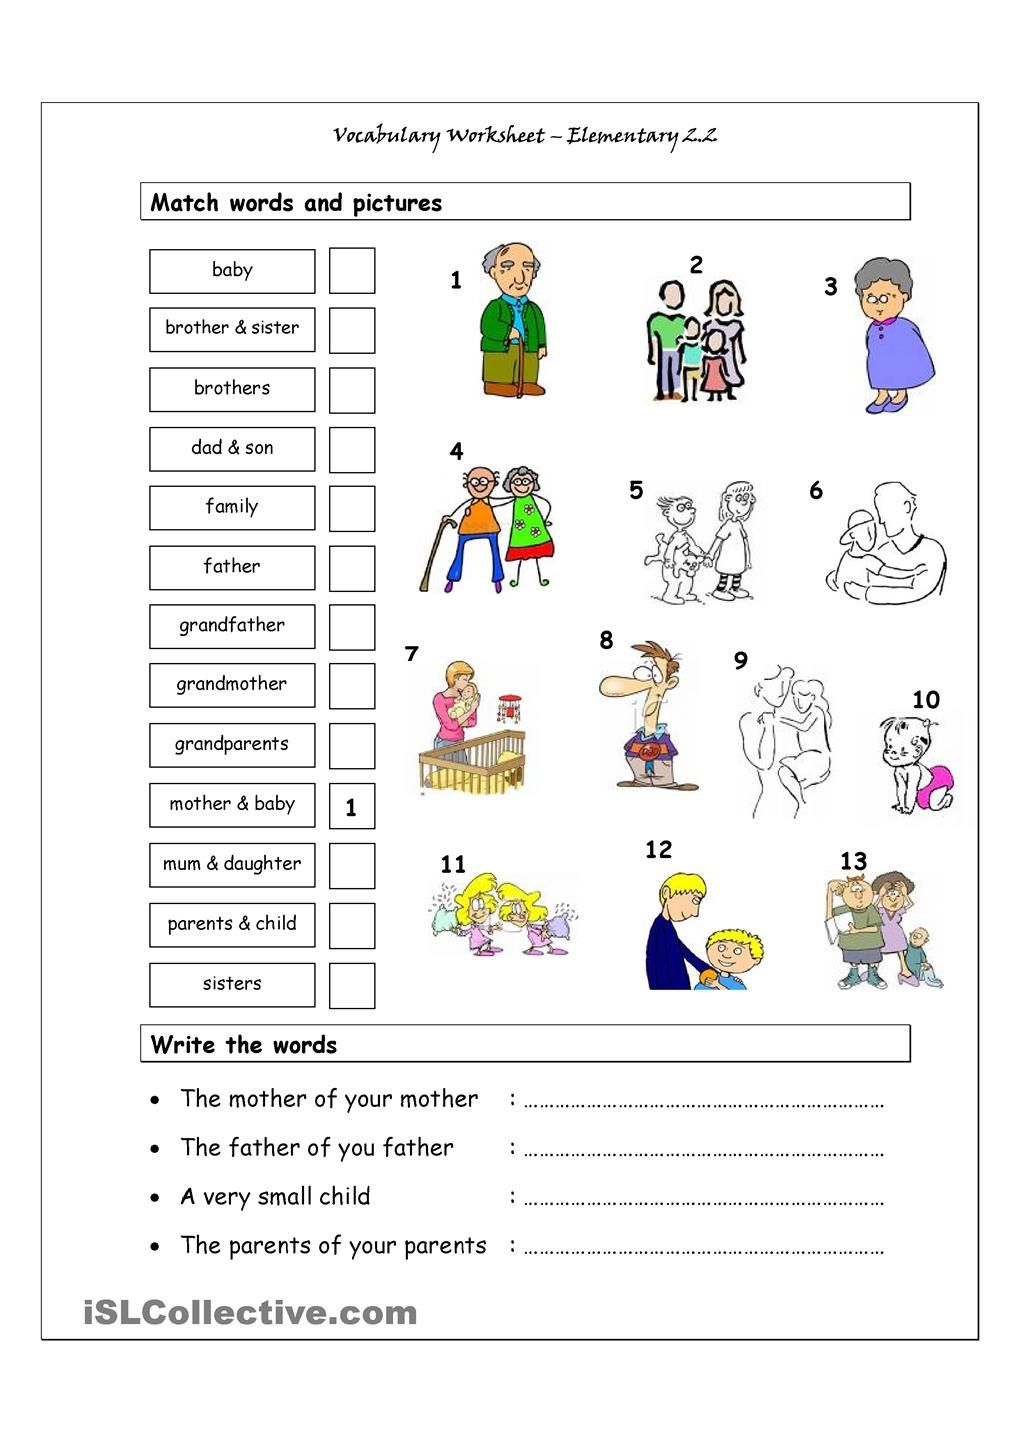 Worksheets Free Worksheets For Teachers vocabulary matching worksheet elementary 2 family esl free printable worksheets made by teachers